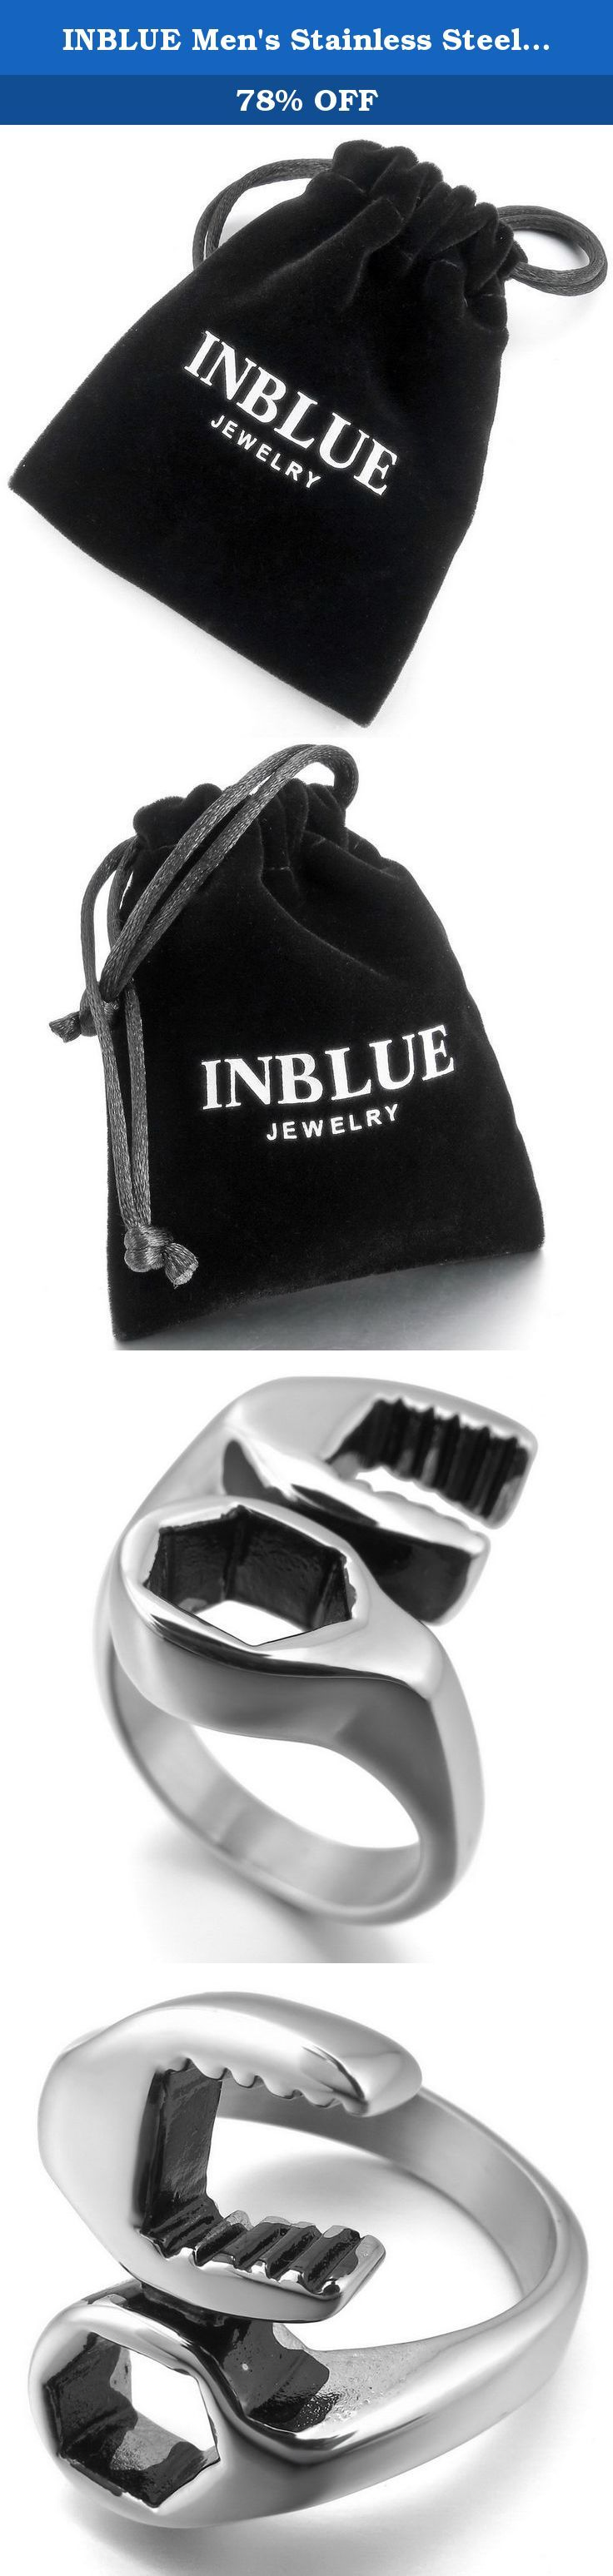 INBLUE Men's Stainless Steel Ring Silver Tone Spanner Mechanic Wrench Tool Size10. INBLUE - High quality Jewelry Discover the INBLUE Collection of jewelry. The selection of high-quality jewelry featured in the INBLUE Collection offers Great values at affordable Price, they mainly made of high quality Stainless Steel, Tungsten, Silver and Leather. Find a special gift for a loved one or a beautiful piece that complements your personal style with jewelry from the INBLUE Collection. .